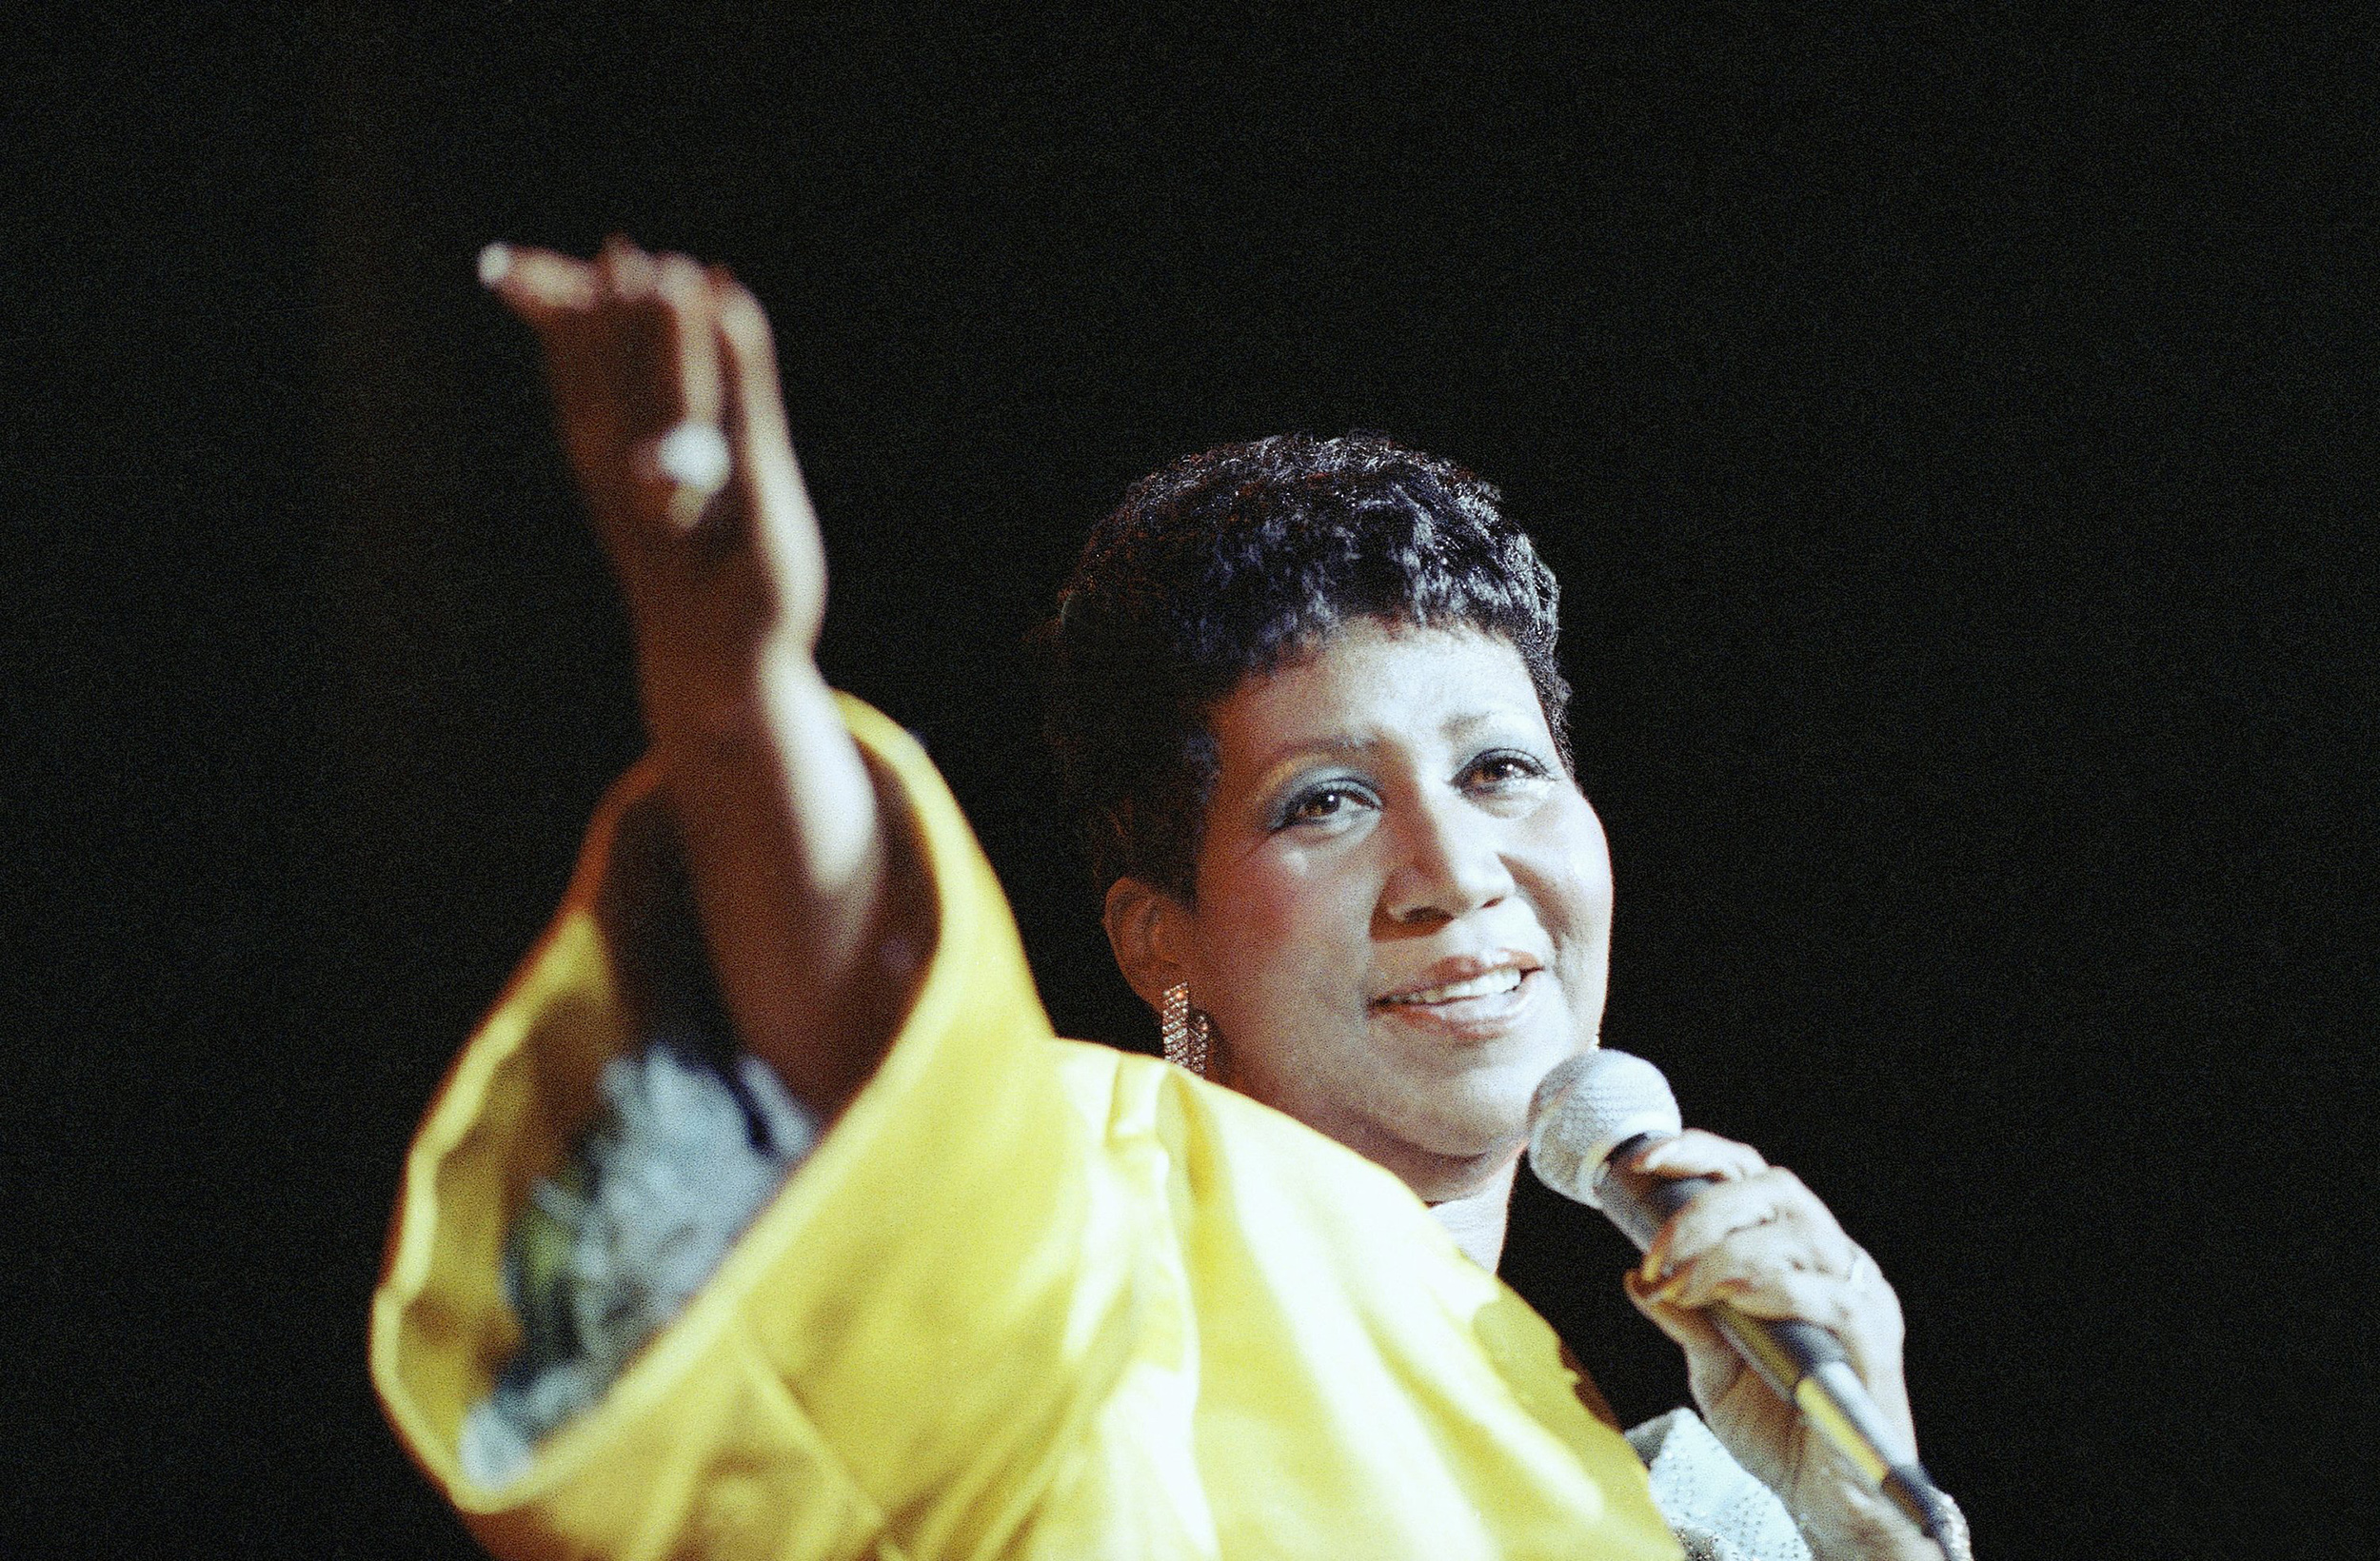 The 'Queen of Soul' pushed America to embrace black humanity